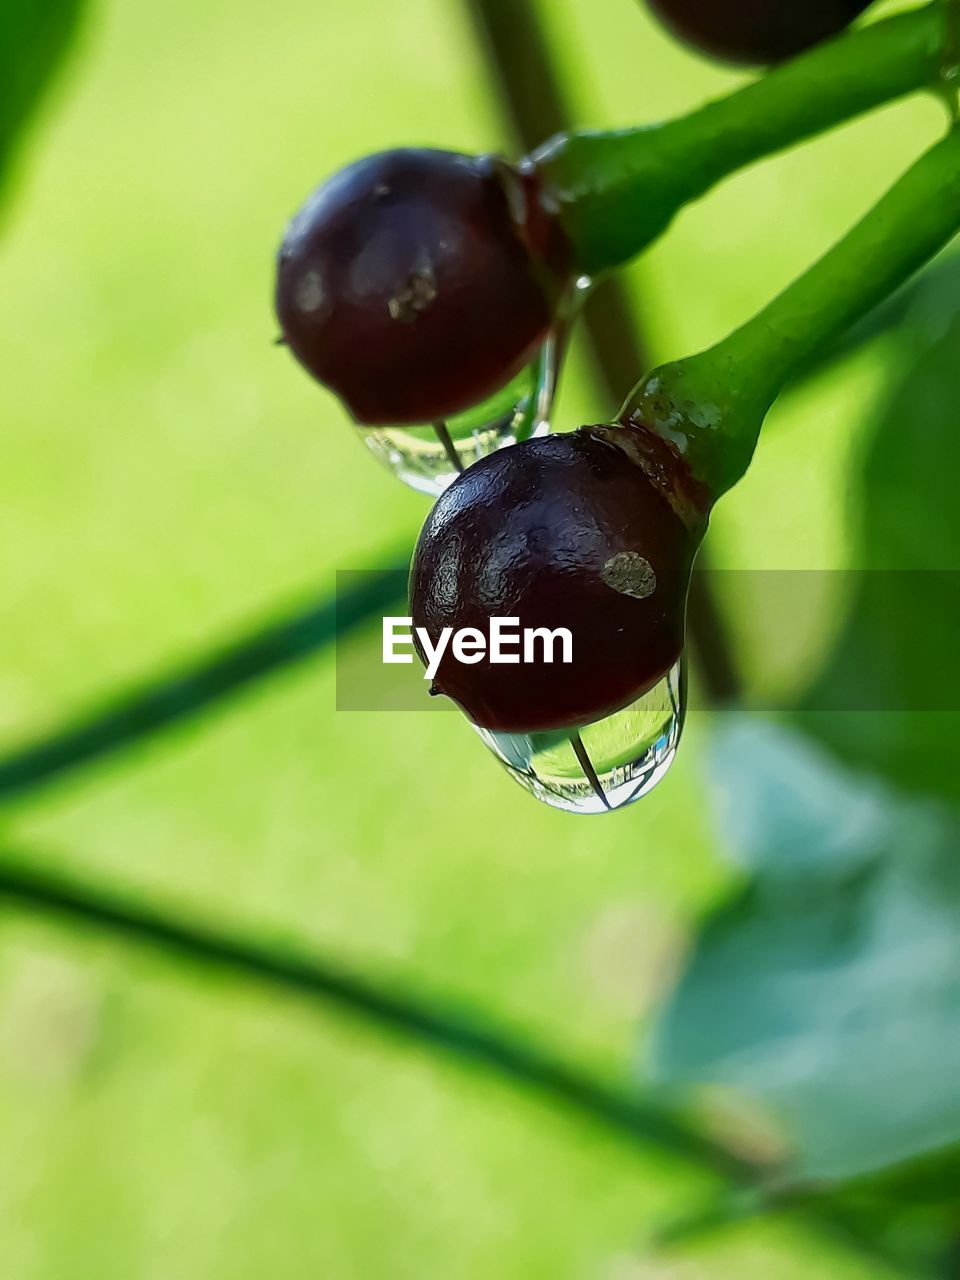 close-up, green color, plant, focus on foreground, no people, food and drink, leaf, plant part, nature, fruit, growth, day, freshness, food, healthy eating, black color, one animal, outdoors, water, invertebrate